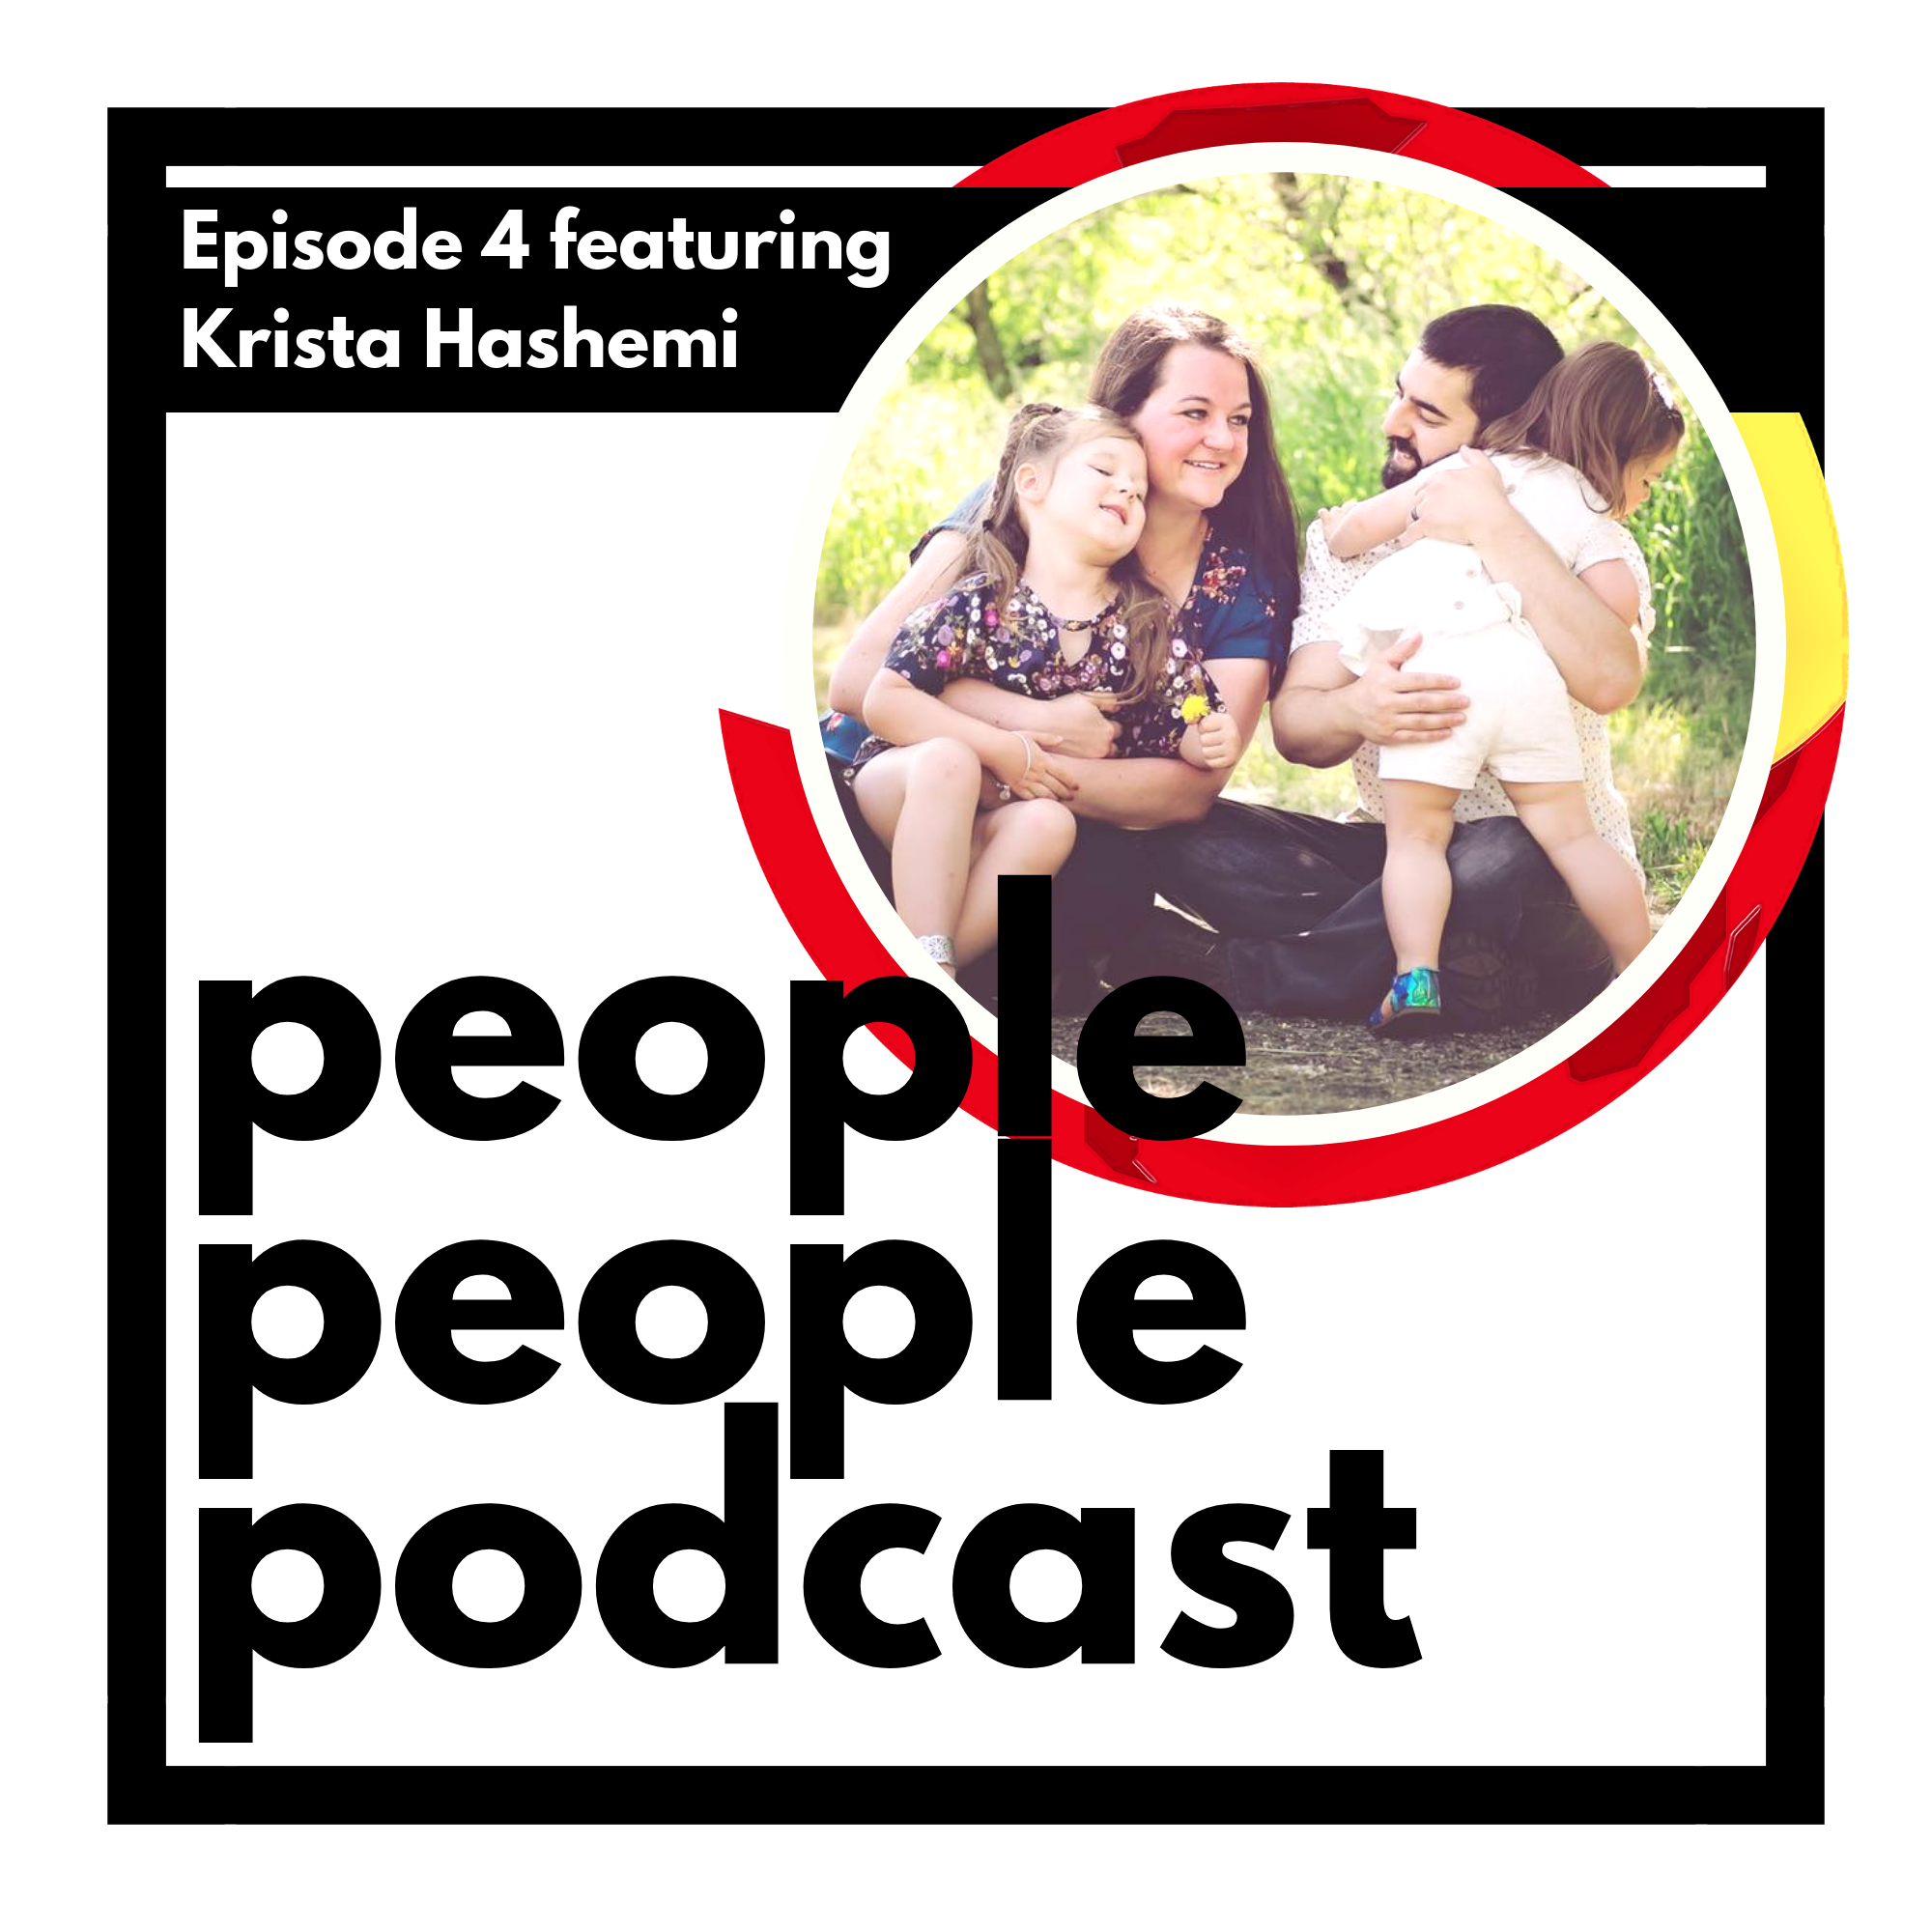 people people podcast (6).png